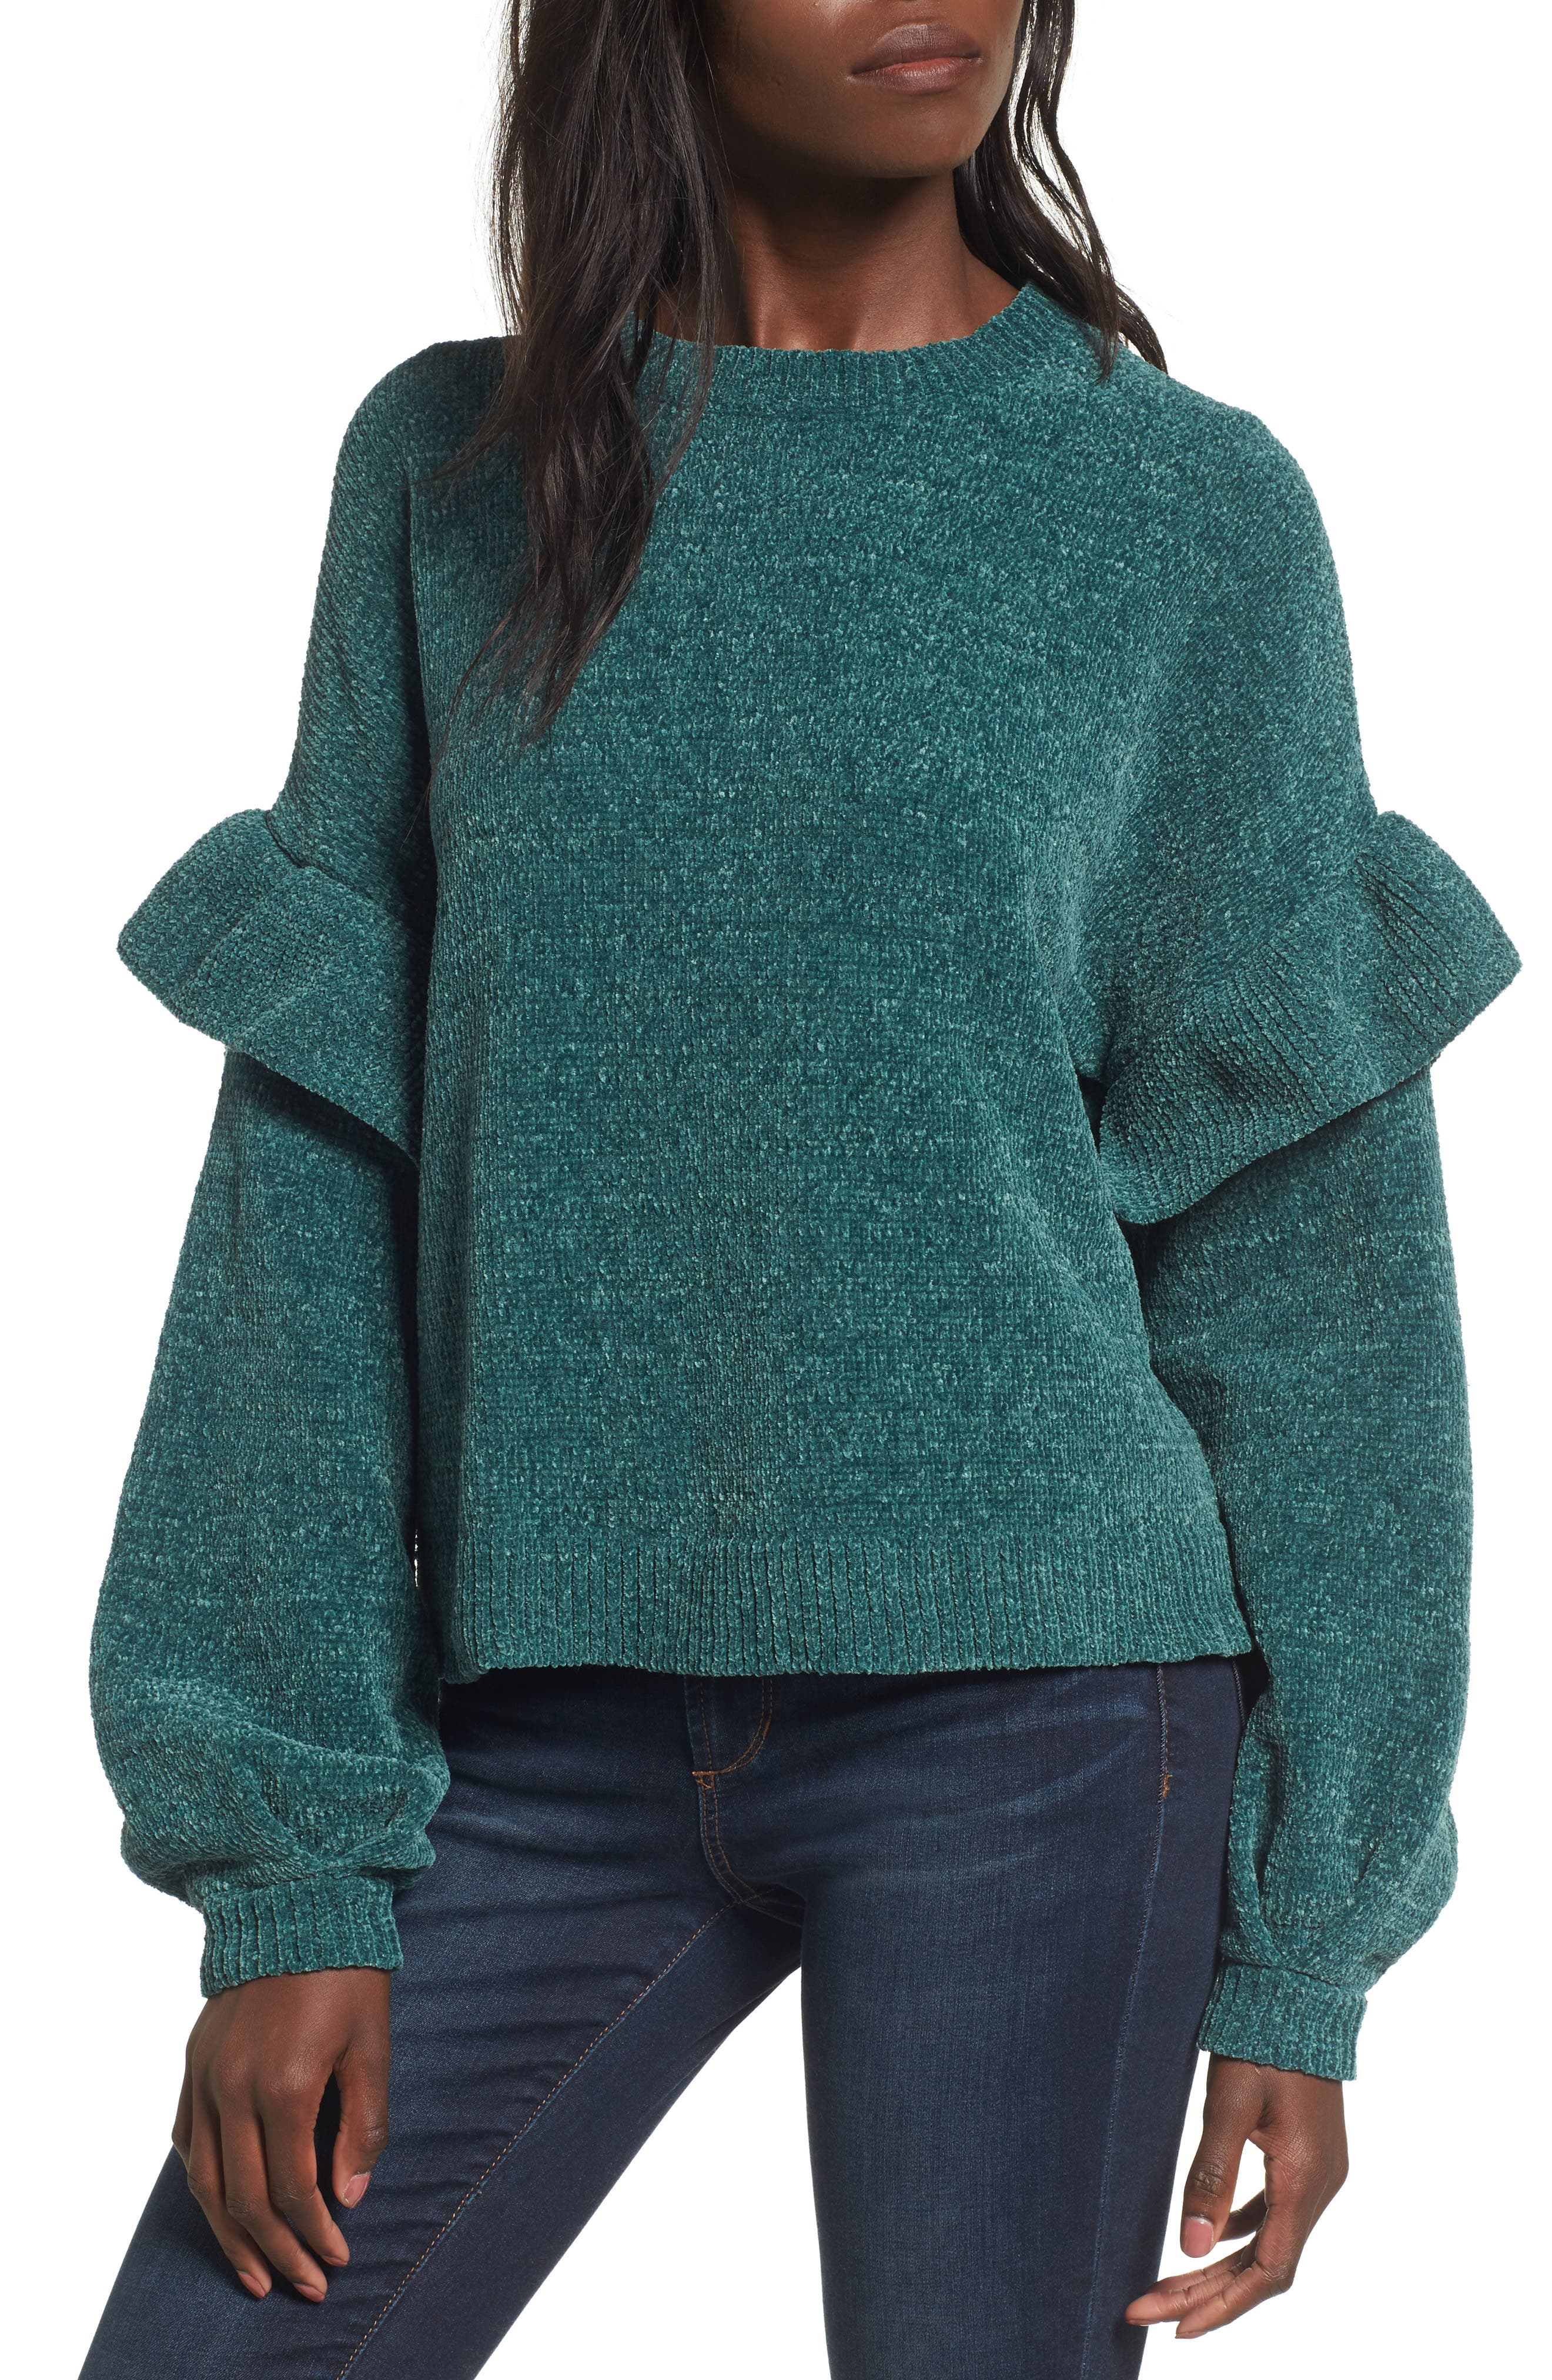 Alternate Image 1 Selected - BP. Ruffle Chenille Sweater